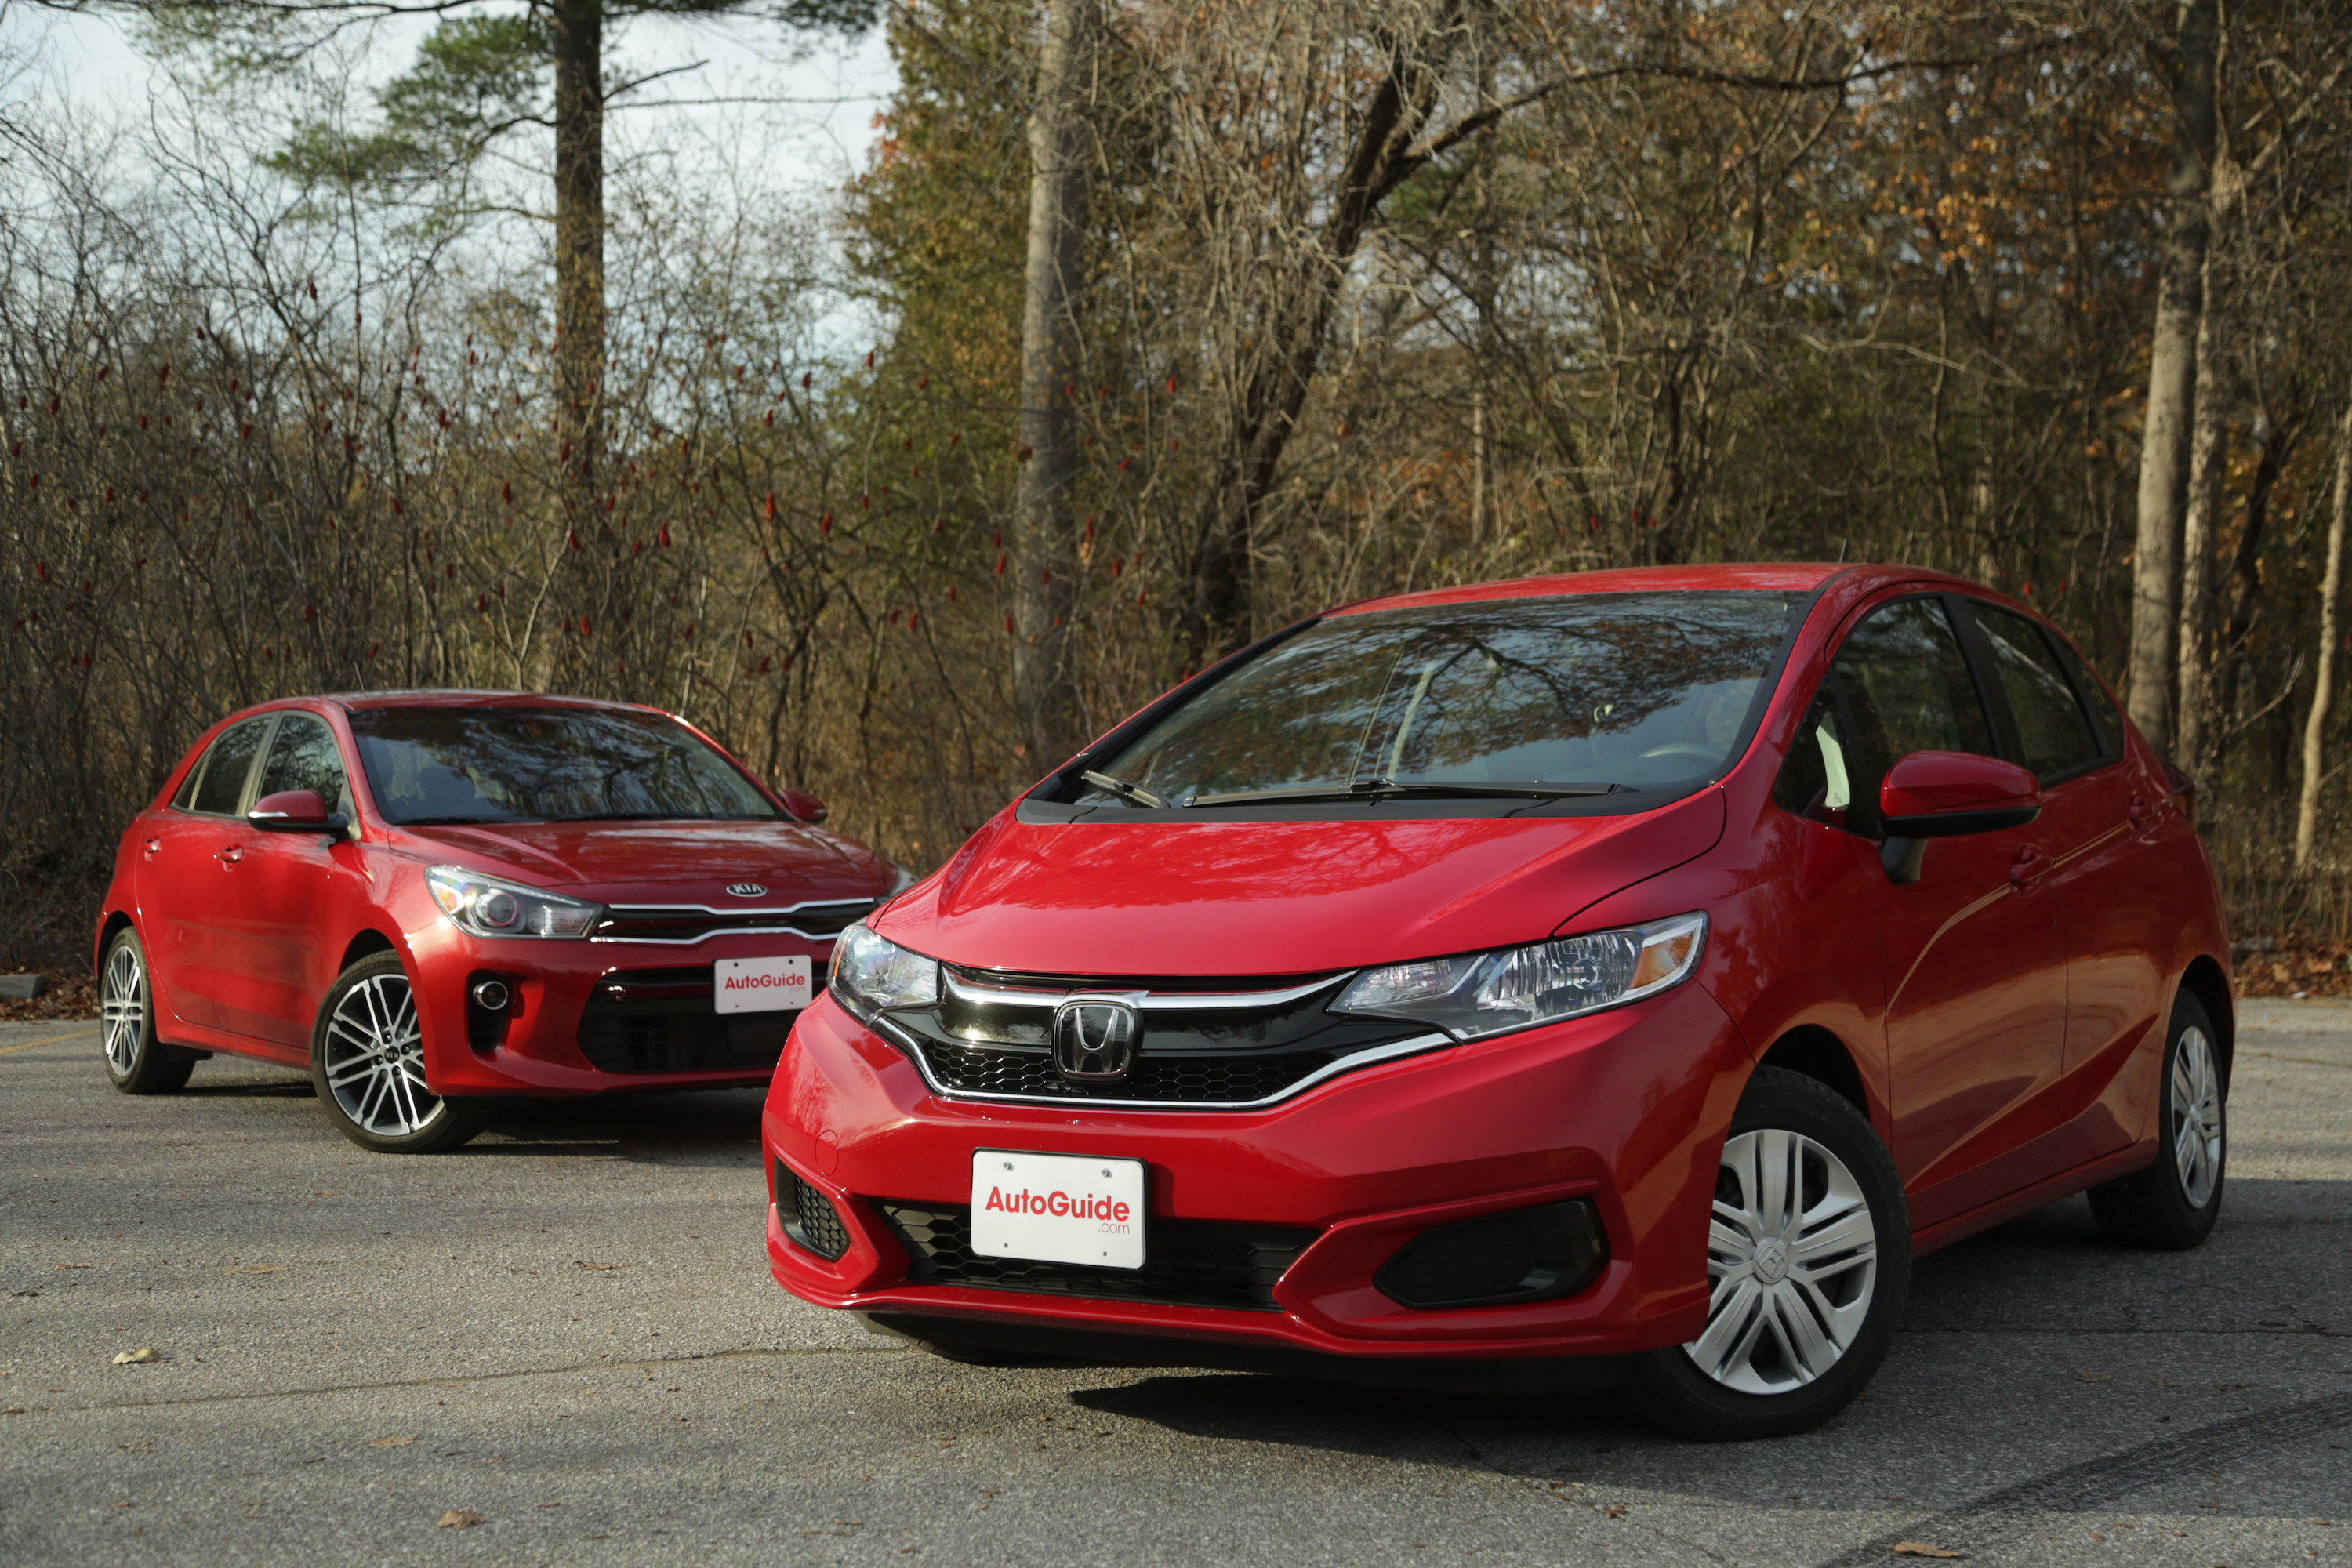 honda fit mpg new car release information Process Manual vs Automated Process Automatic Processing